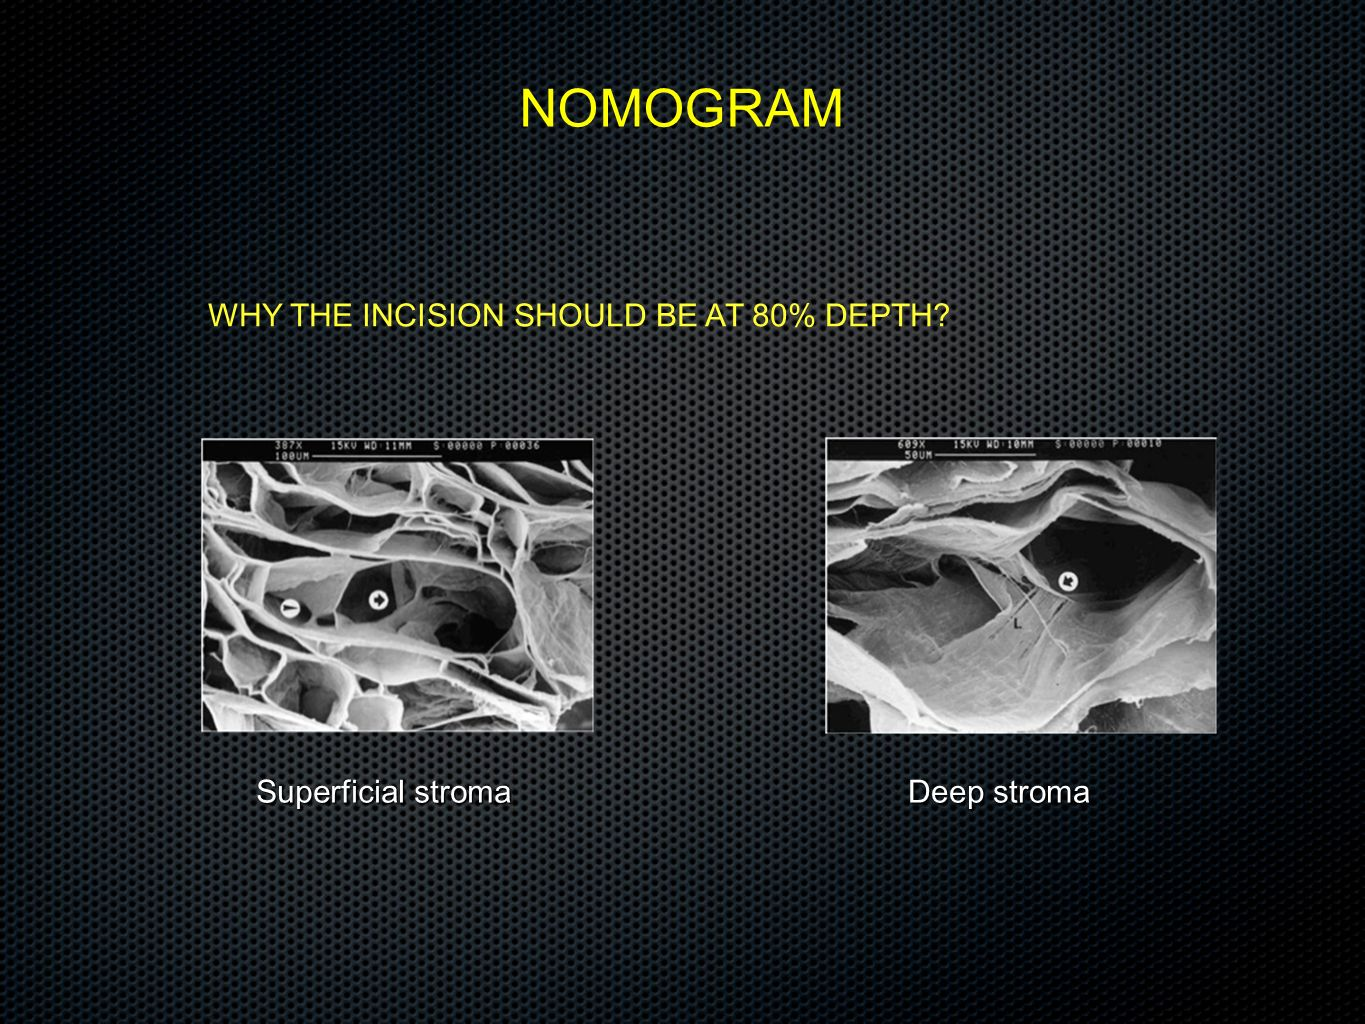 NOMOGRAM WHY THE INCISION SHOULD BE AT 80% DEPTH Superficial stroma